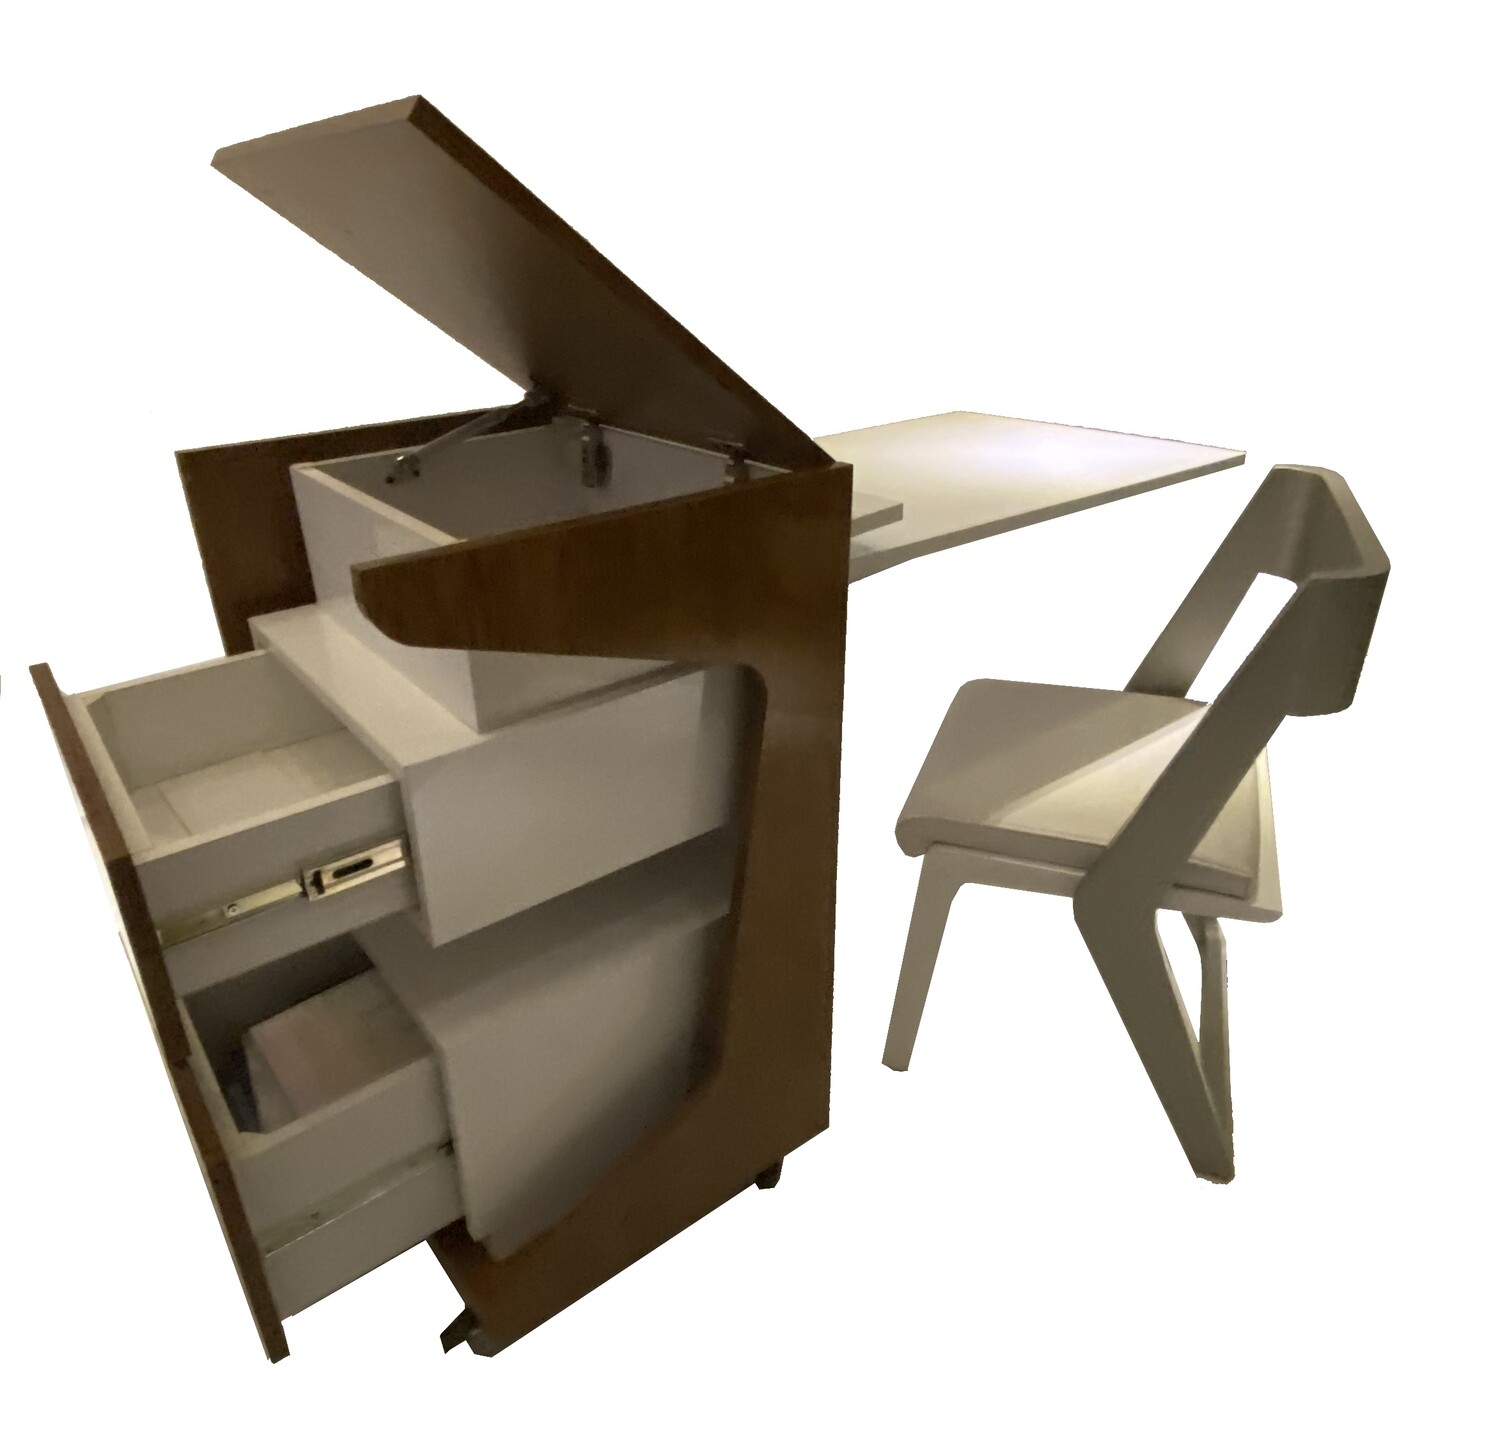 3 in 1 Smart Desk with Drawer and Chair